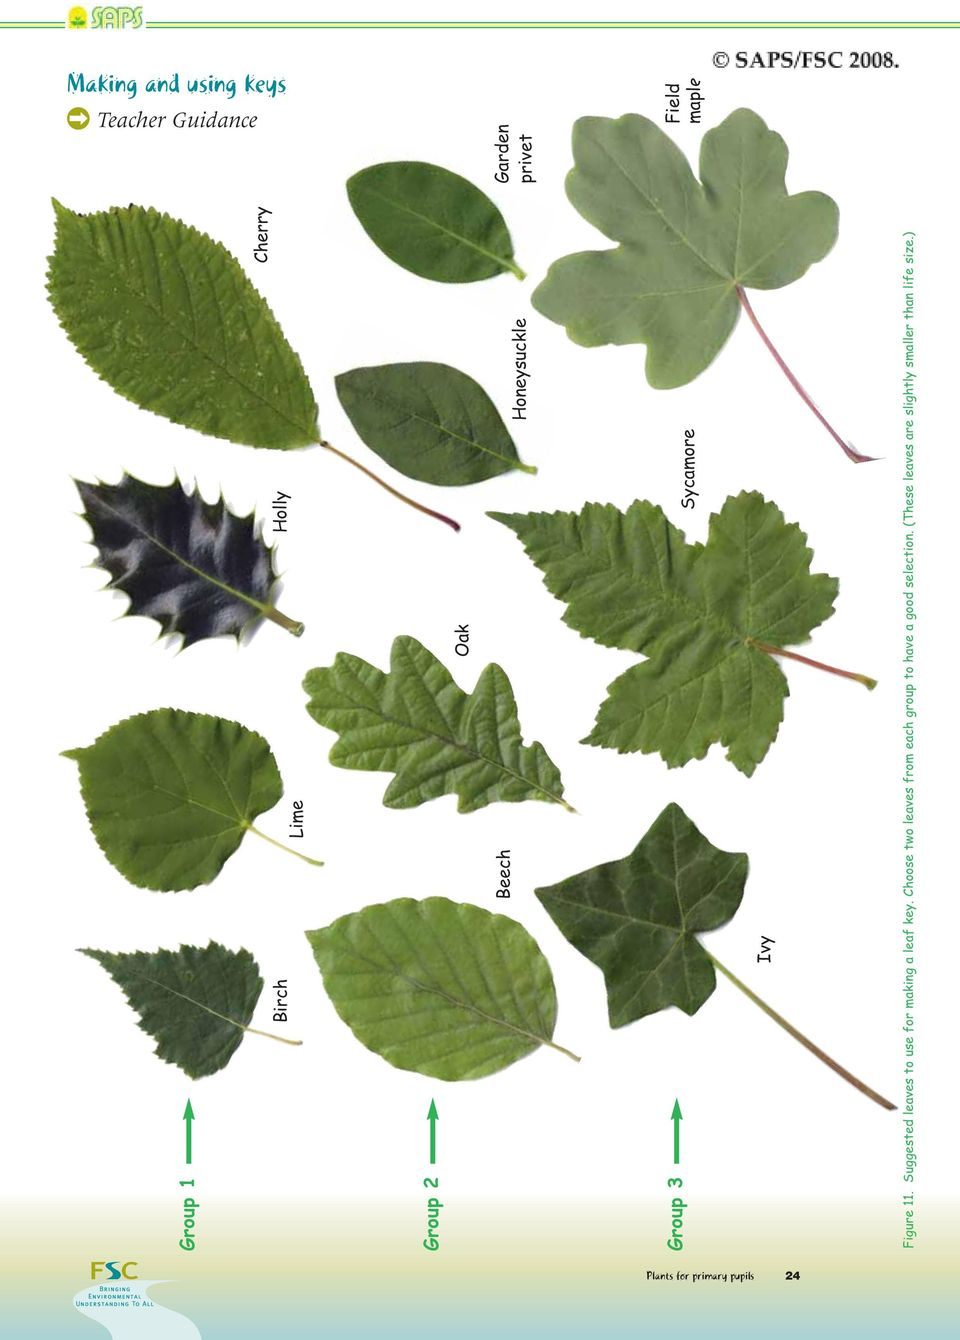 Suggested leaves to use for making a leaf key.